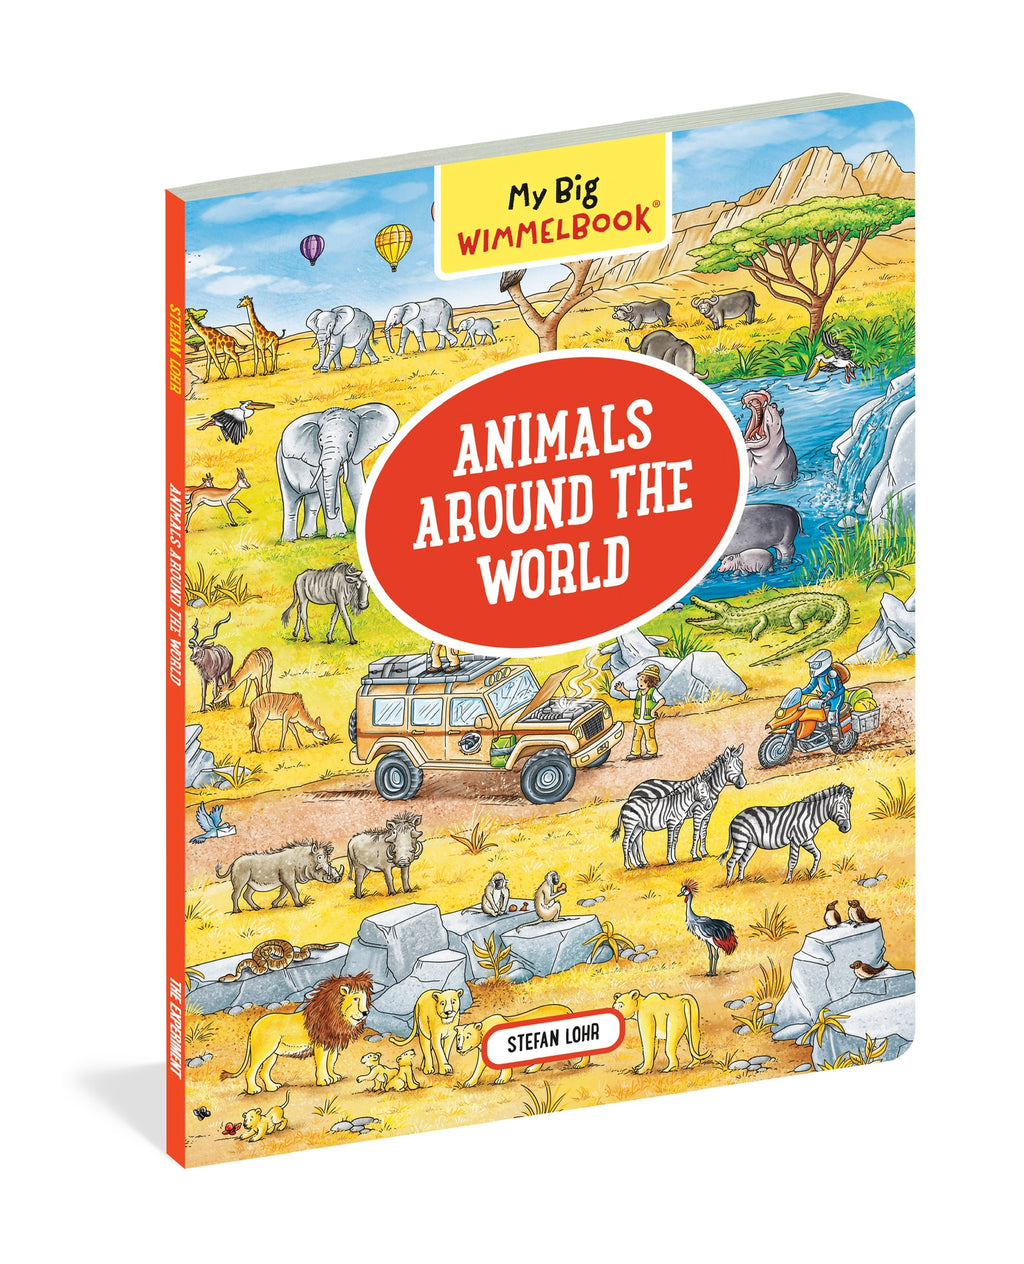 My Big Wimmelbook- Animals Around the World